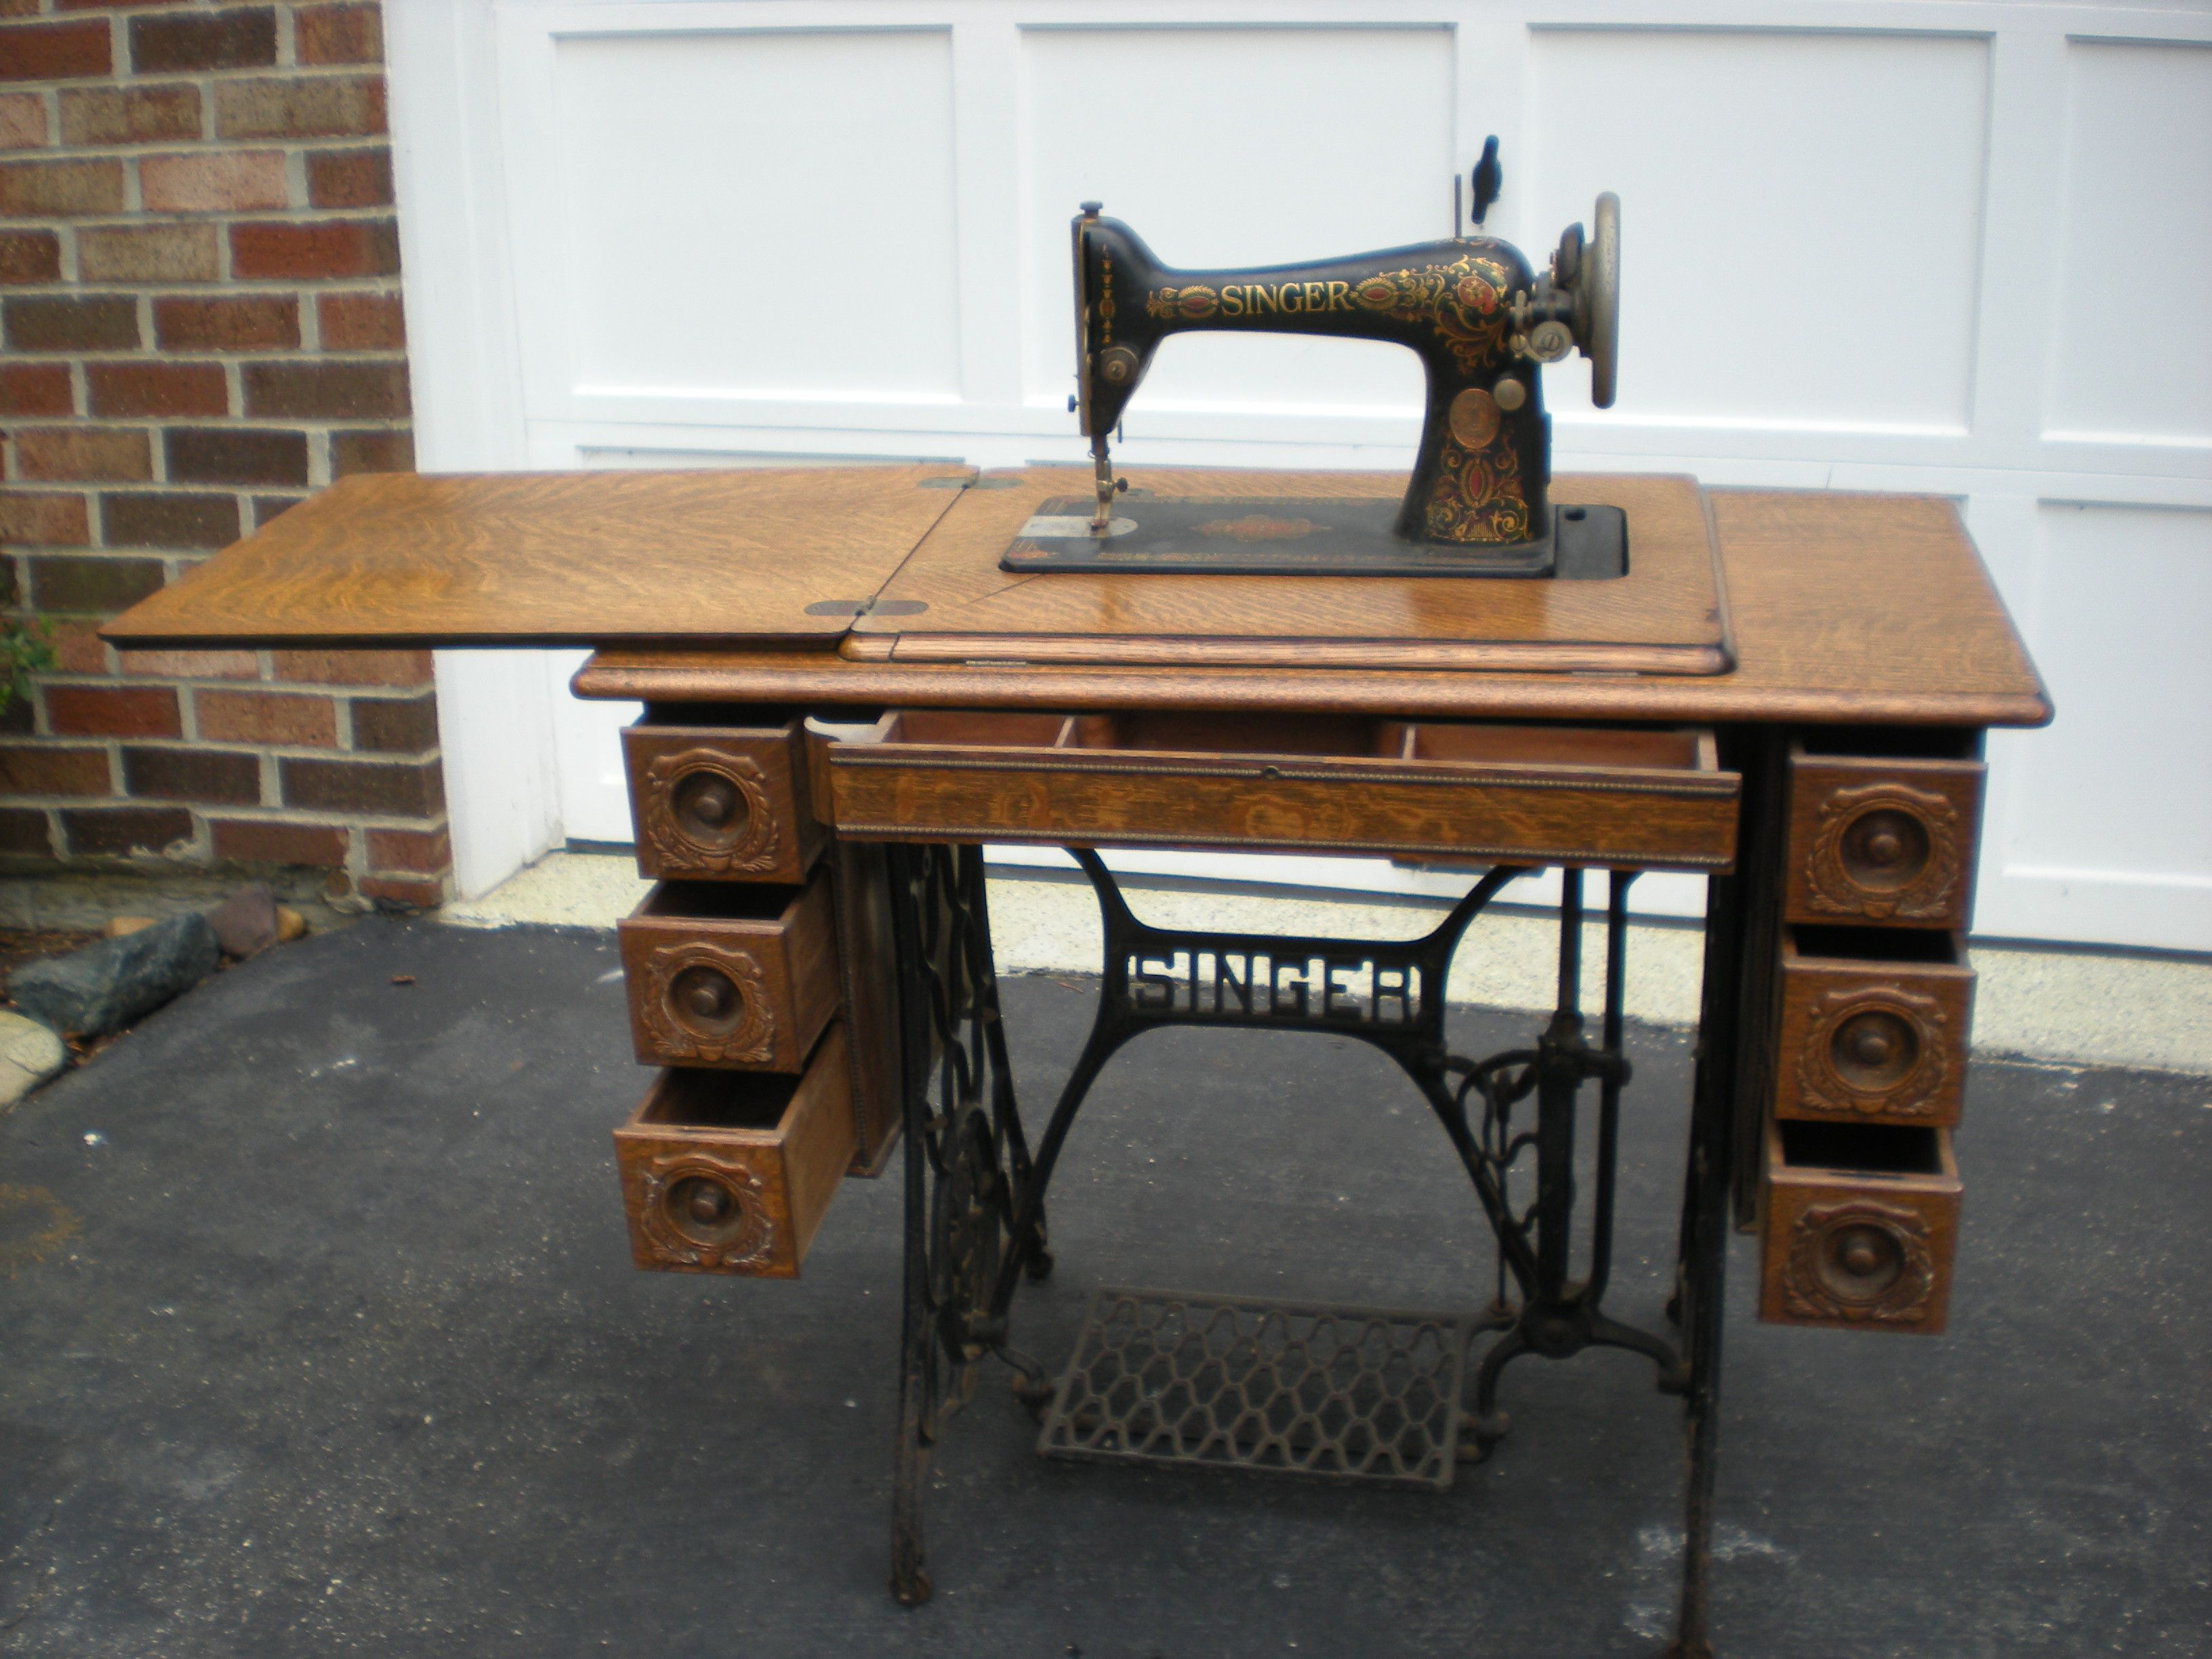 Antique Singer Sewing Machines In Cabinet Nagpurentrepreneurs